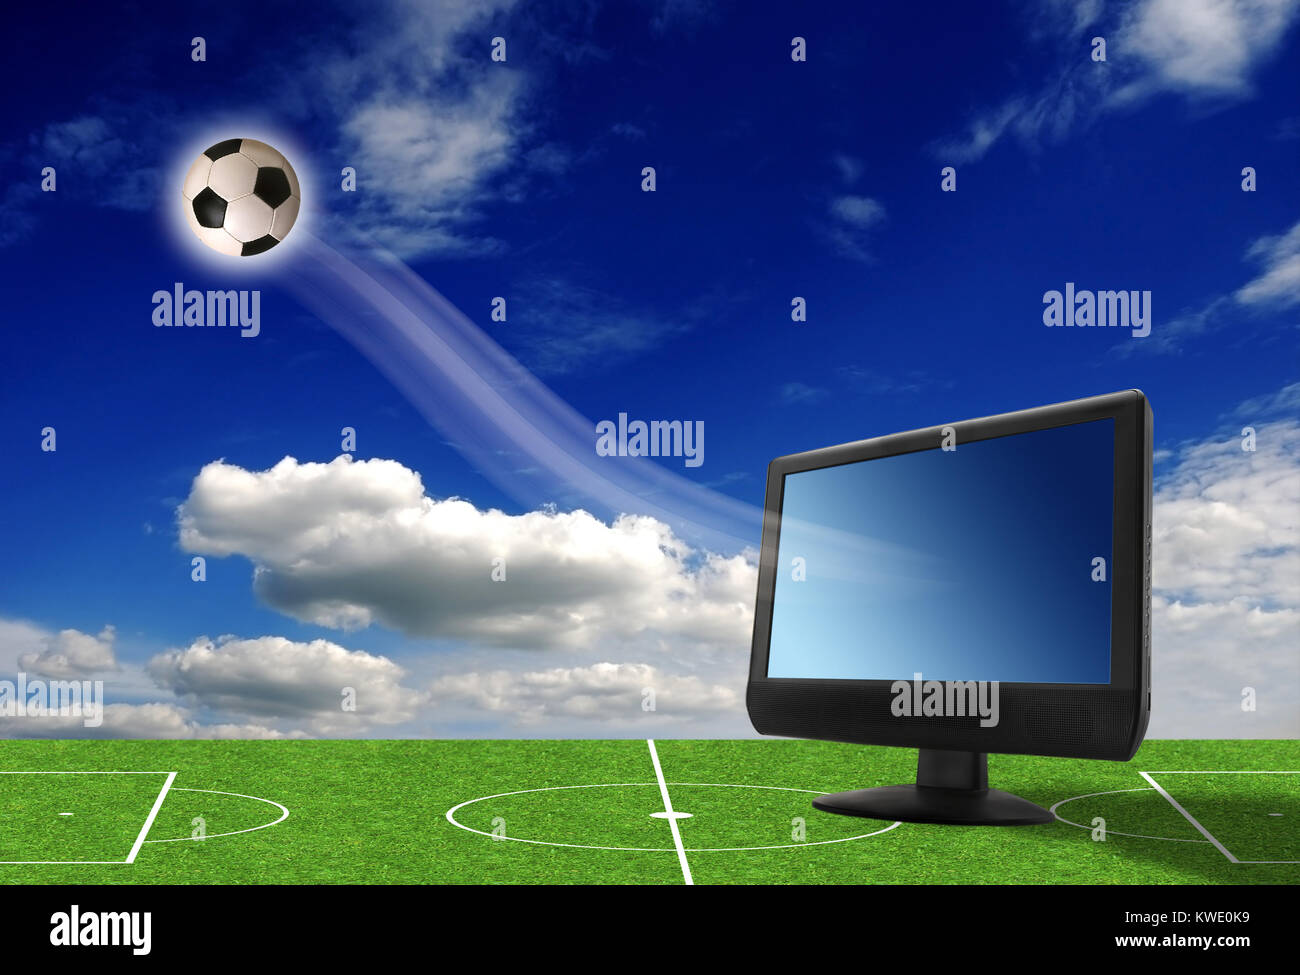 conceptual illustration of soccer television broadcasting - Stock Image